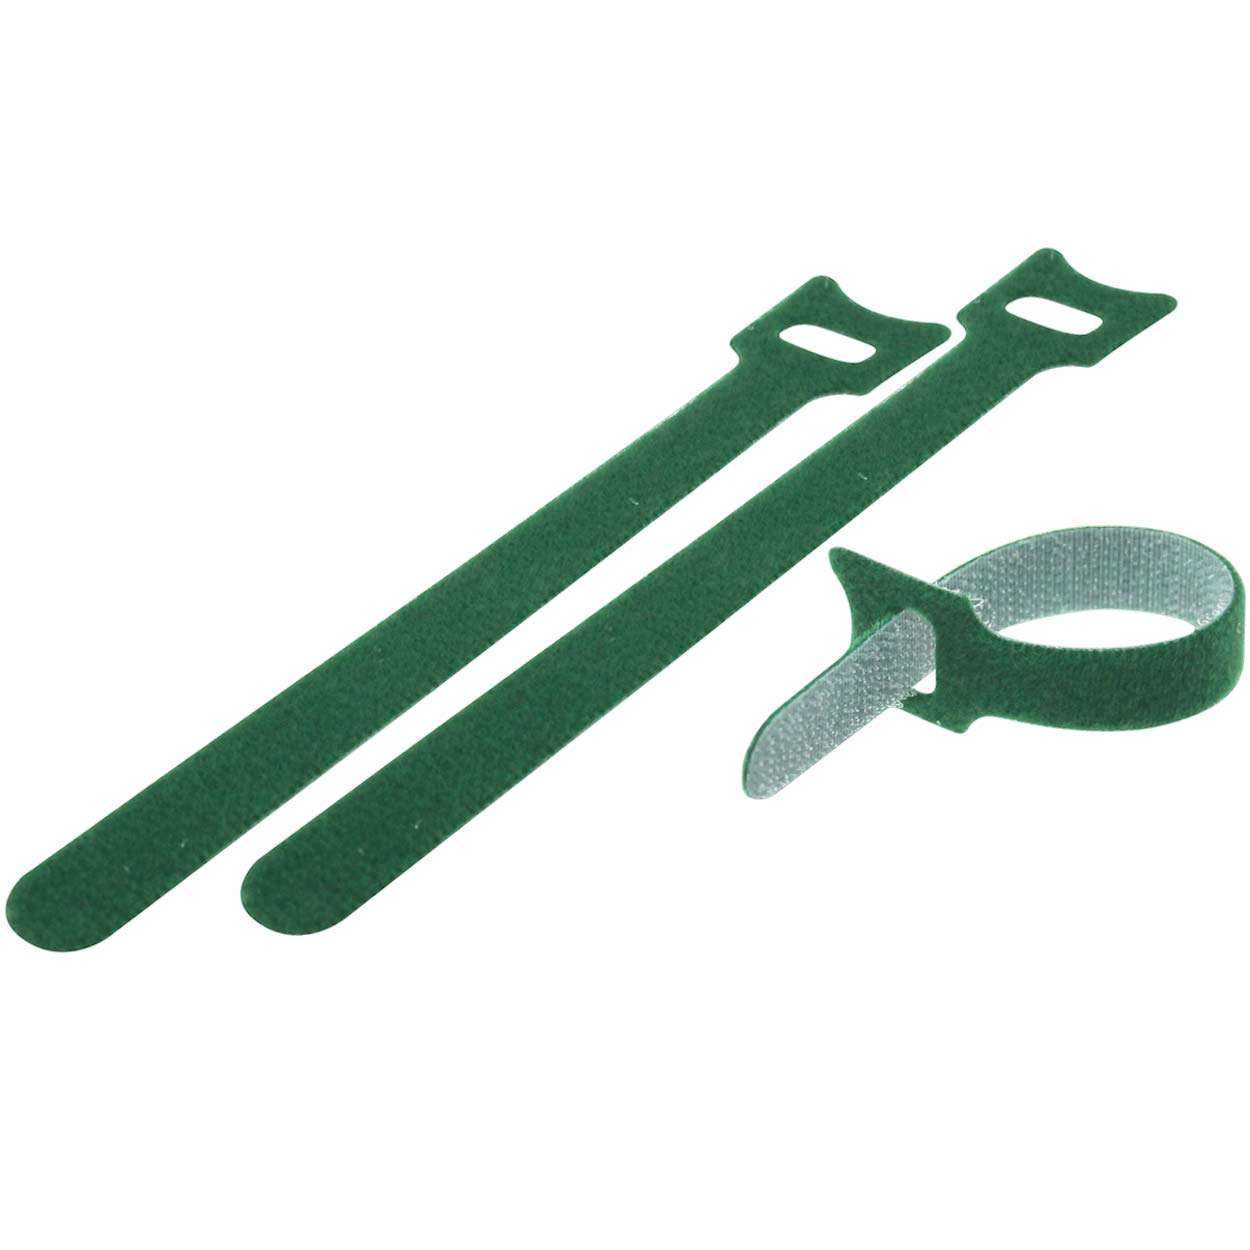 Velcro Cable Tie 0.48 x 6 inch (12 x 150mm), 10pcs/pack - Green